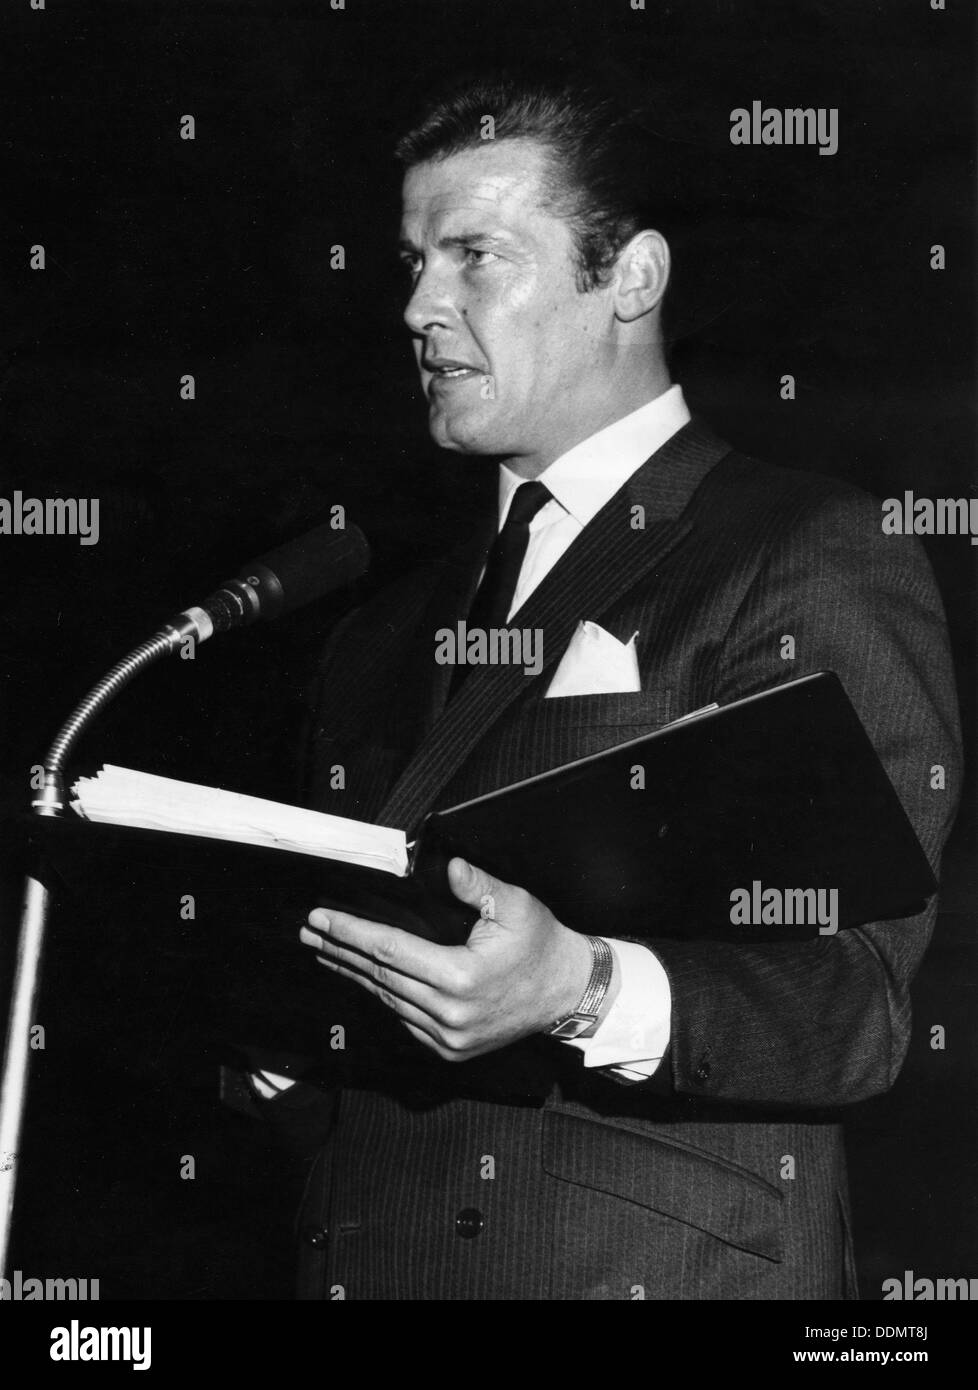 Roger Moore (1927- ), British actor, 1968. - Stock Image